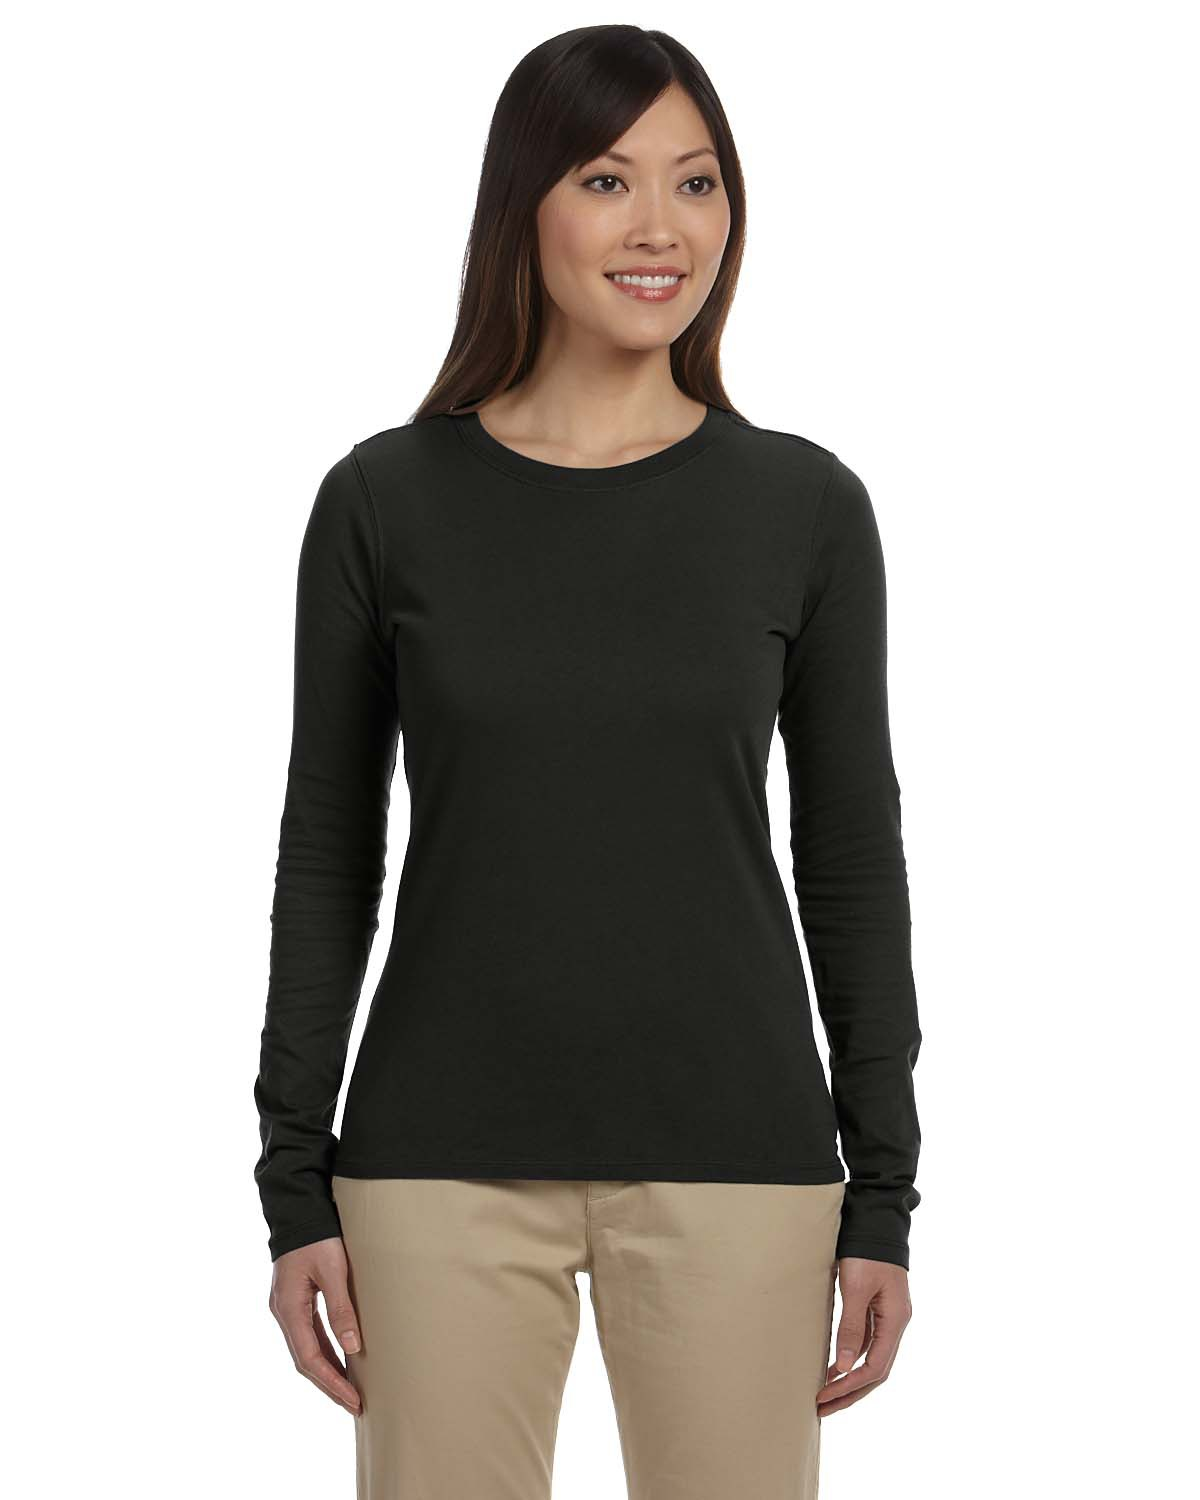 Free shipping and returns on Women's Long Sleeve Tops at al9mg7p1yos.gq